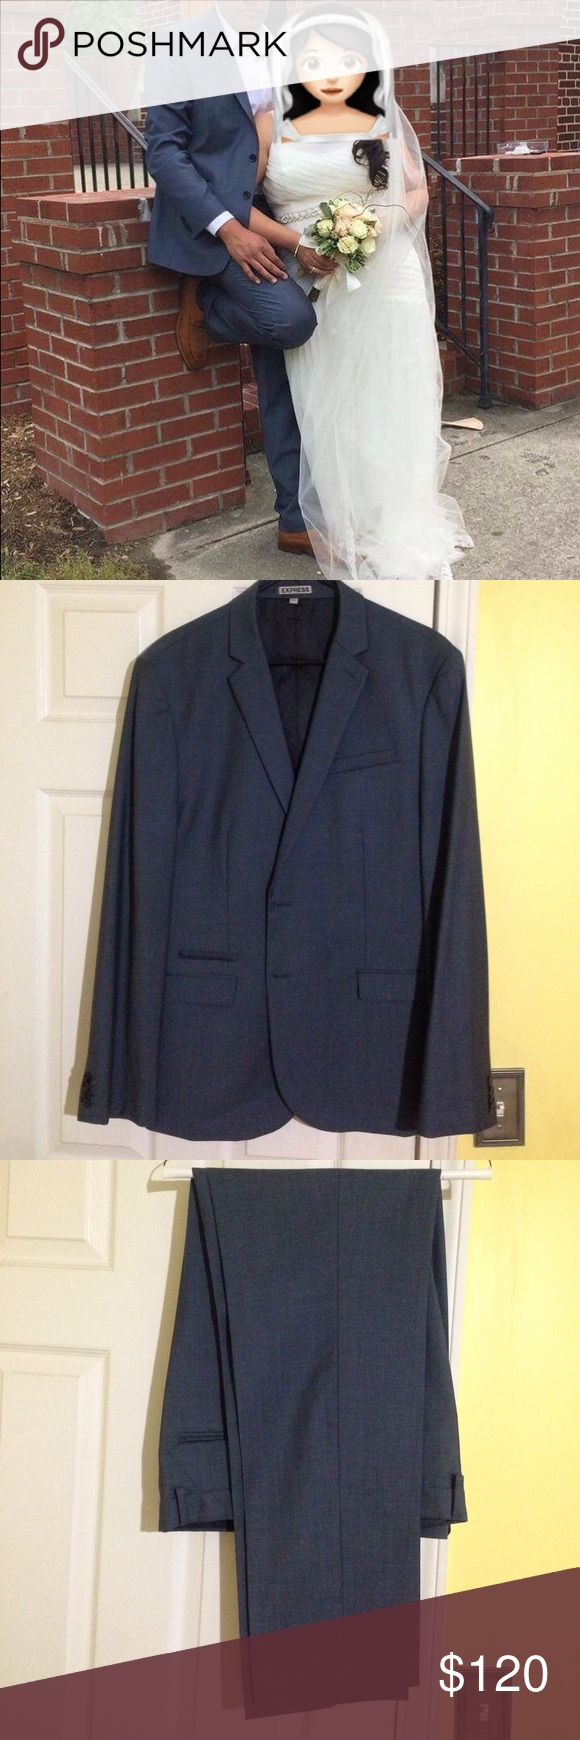 Express men suit set Slim fit 42R suit and 34/34 pants, paid over $400 for both. Refer to 2nd picture for a better idea of the color, as it can be confused between blue and gray. Like new condition. Dry cleaned. Express Suits & Blazers